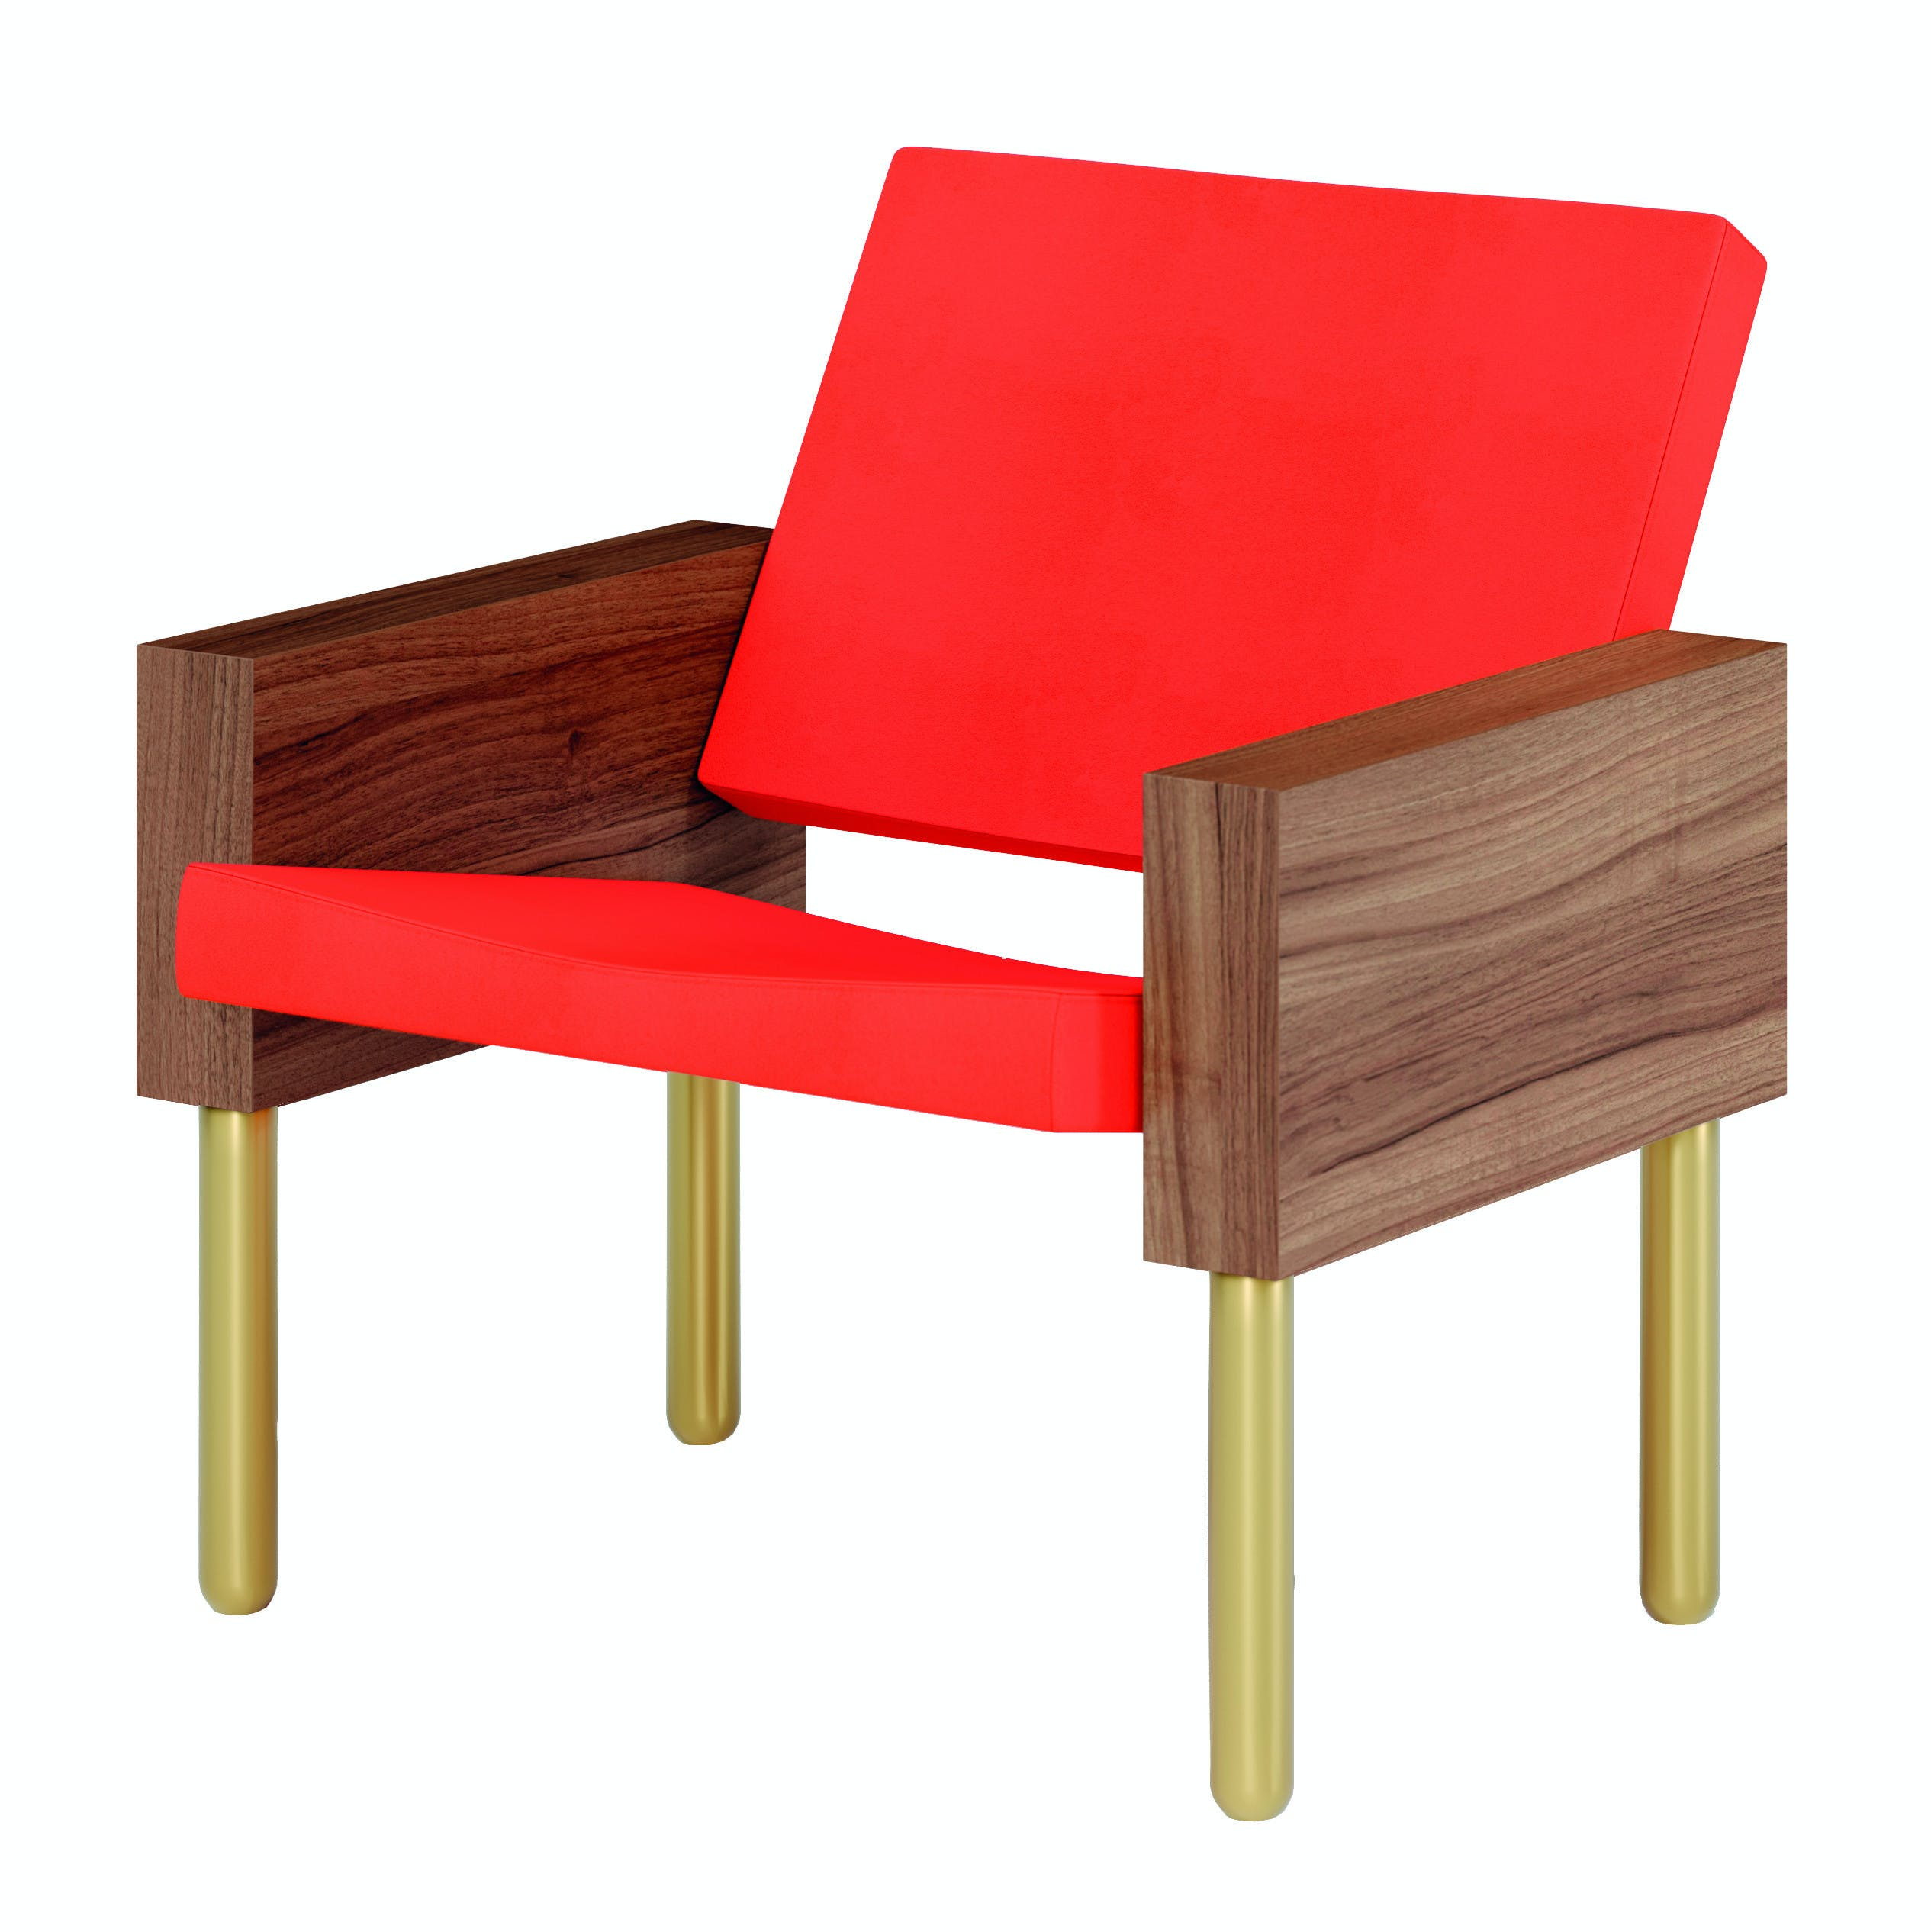 La-chance-furniture-block-armchair-red-close-haute-living